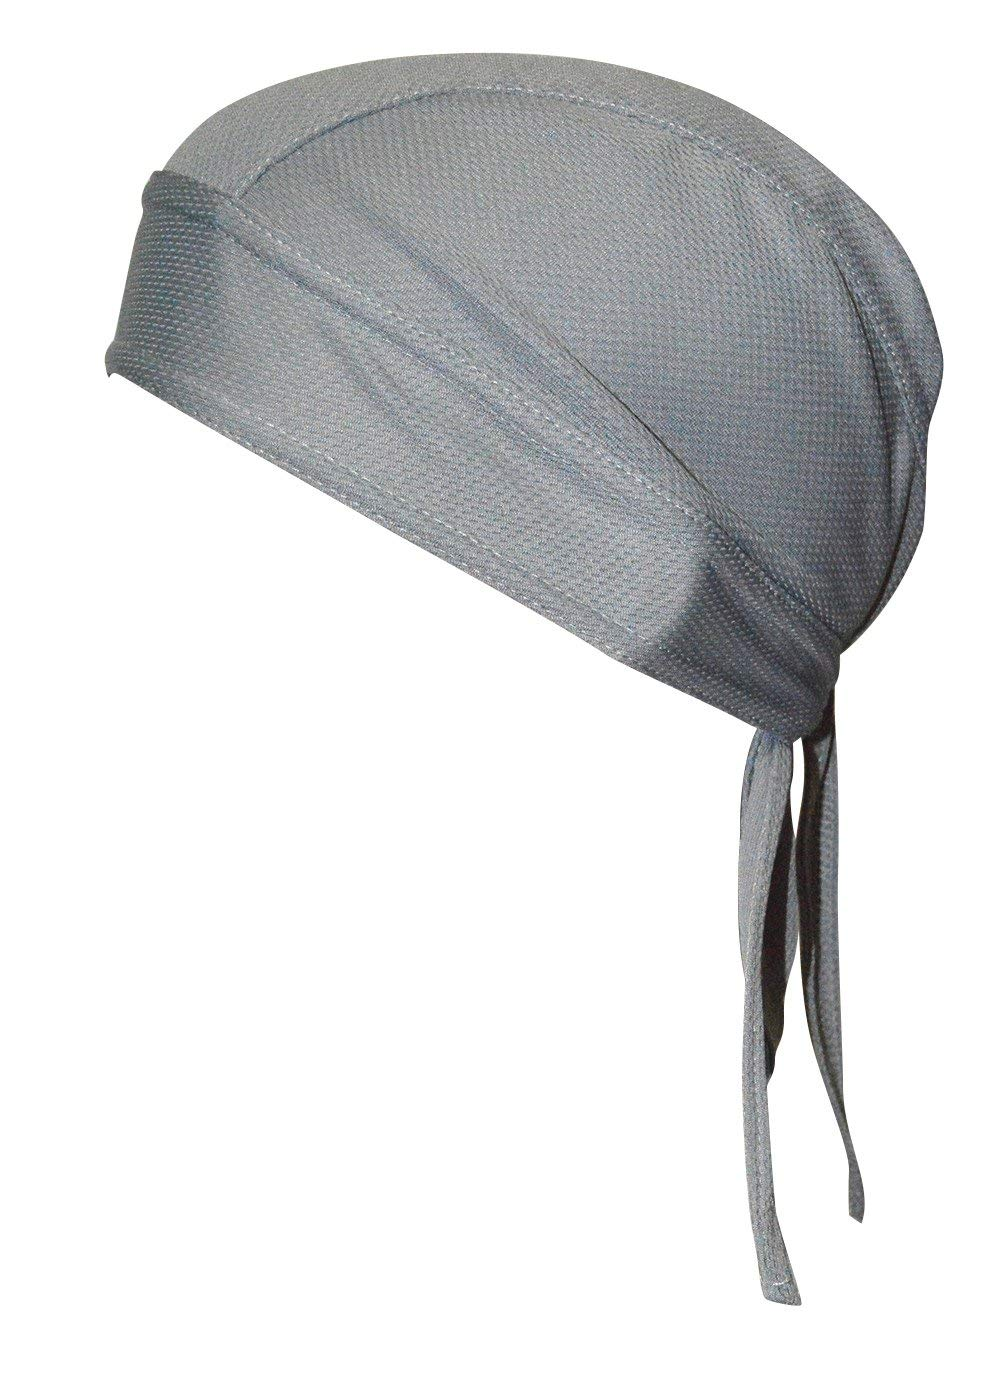 QING Sweat Wicking Beanie Cap Hat Chemo Cap Skull Cap for Men and Women (Gray 1 Pack) by QING